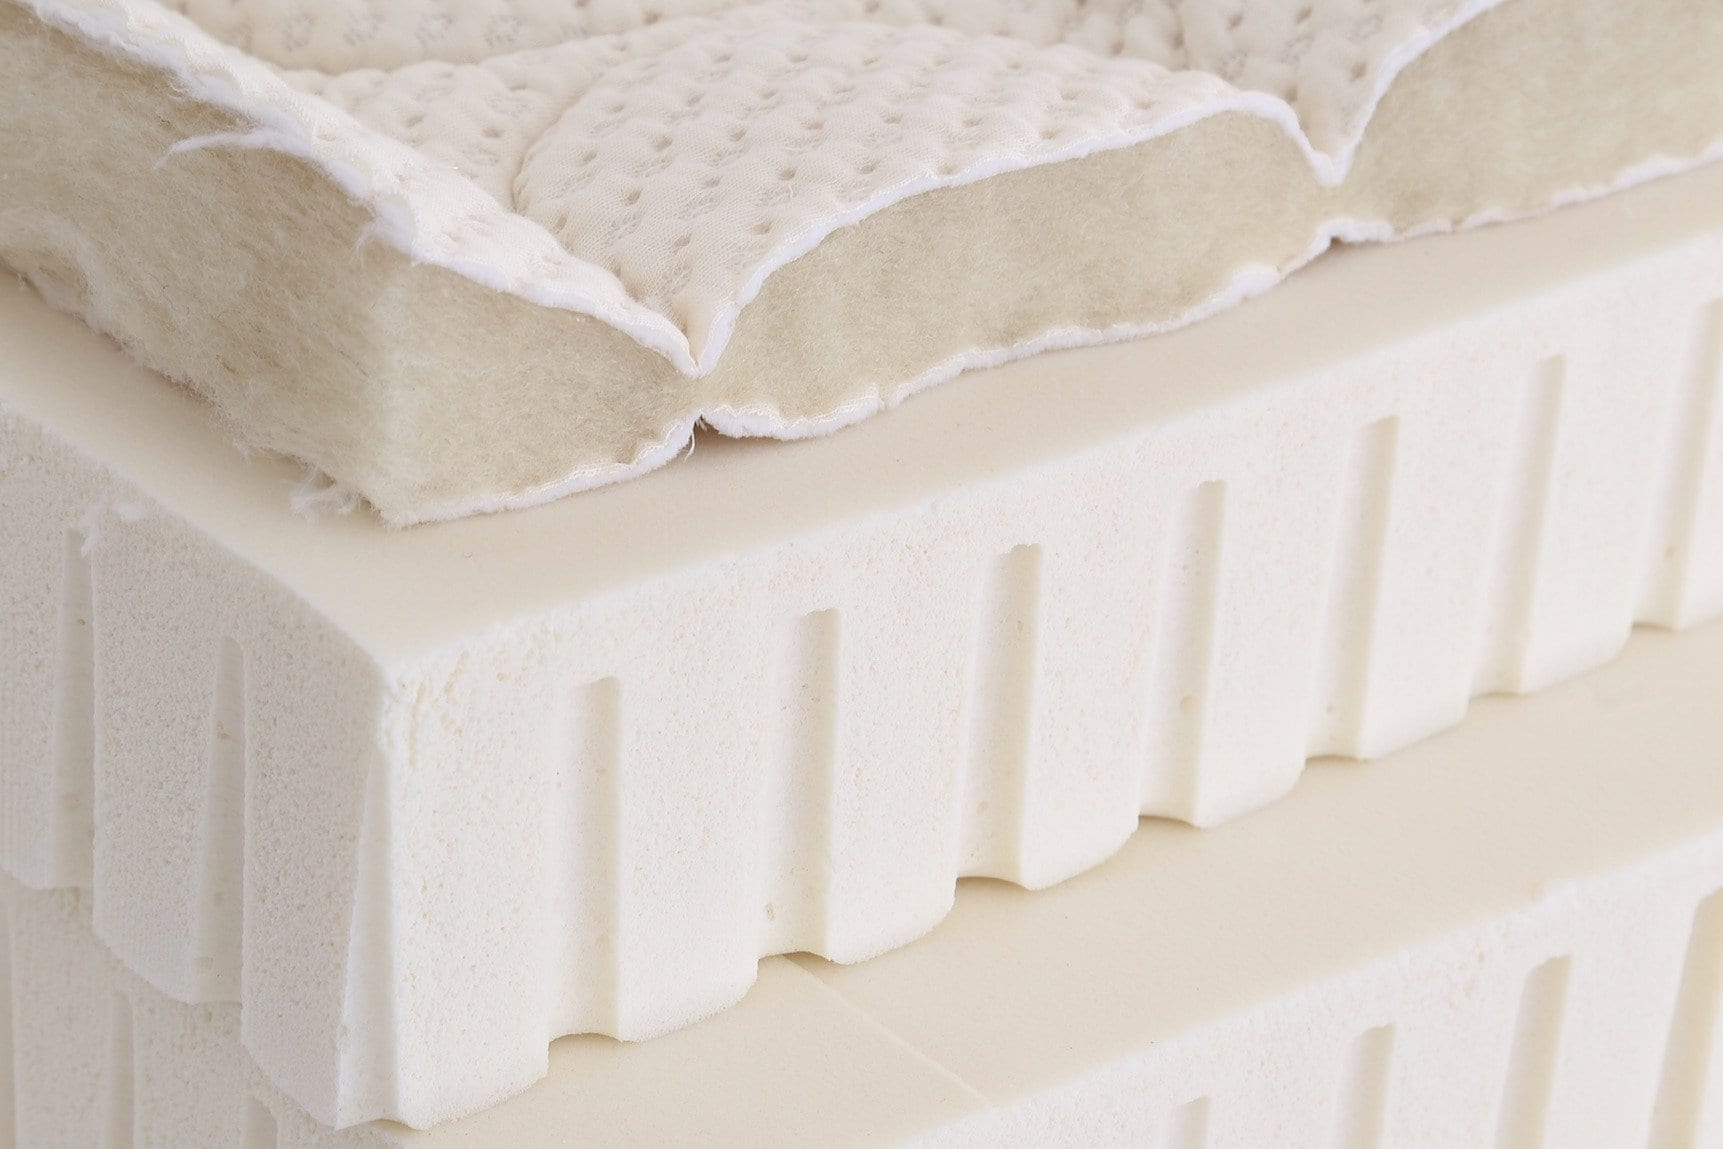 Latex Foam Mattress Natural Latex Mattress Foam Rubber Cores And Cotton With Wool